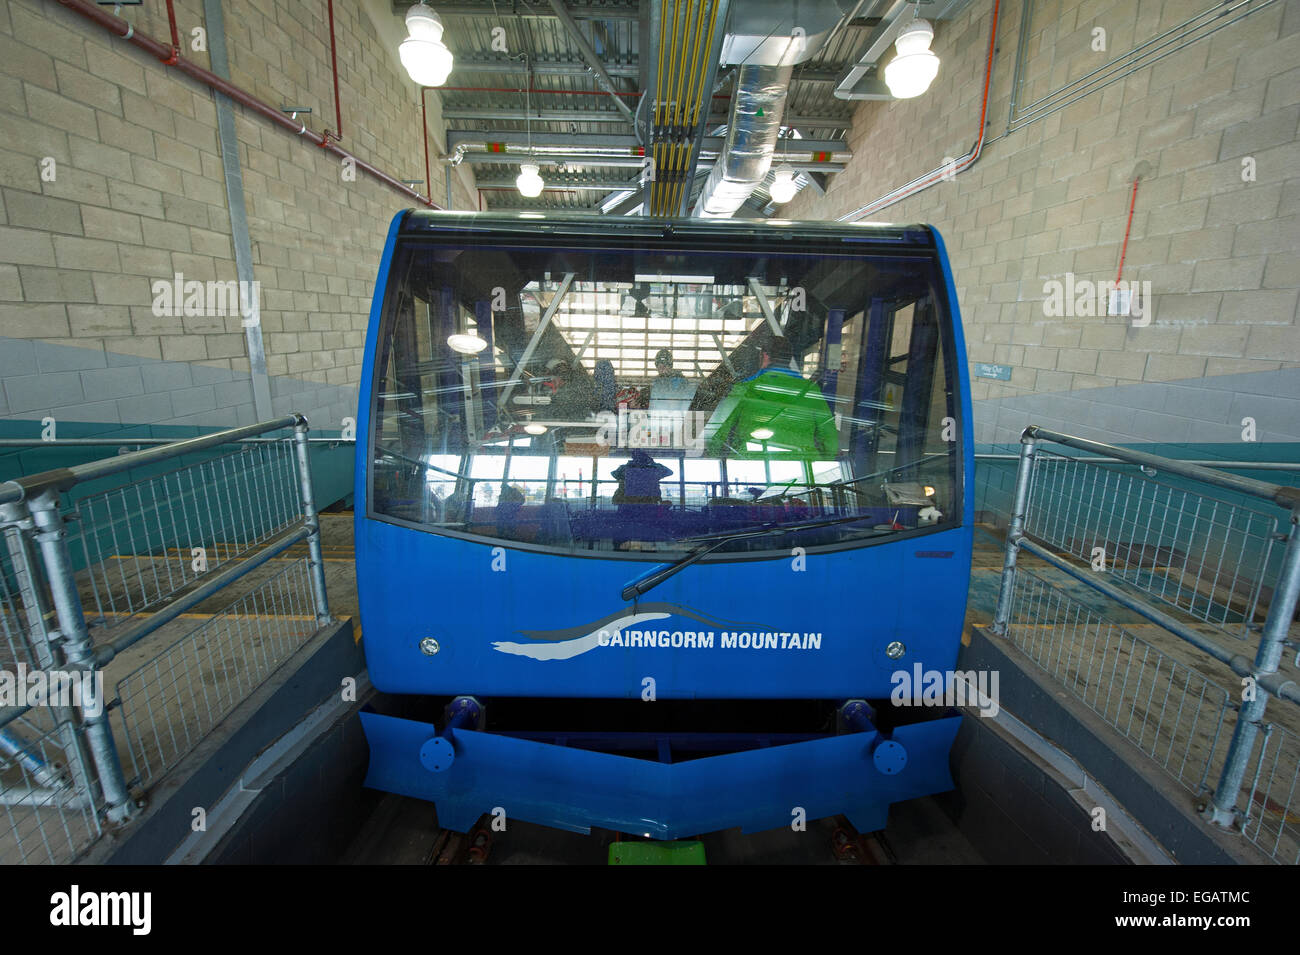 The Cairrngorm Funicular Mountain Railway at the top mountain station ready to depart back To the car park.  SCO - Stock Image